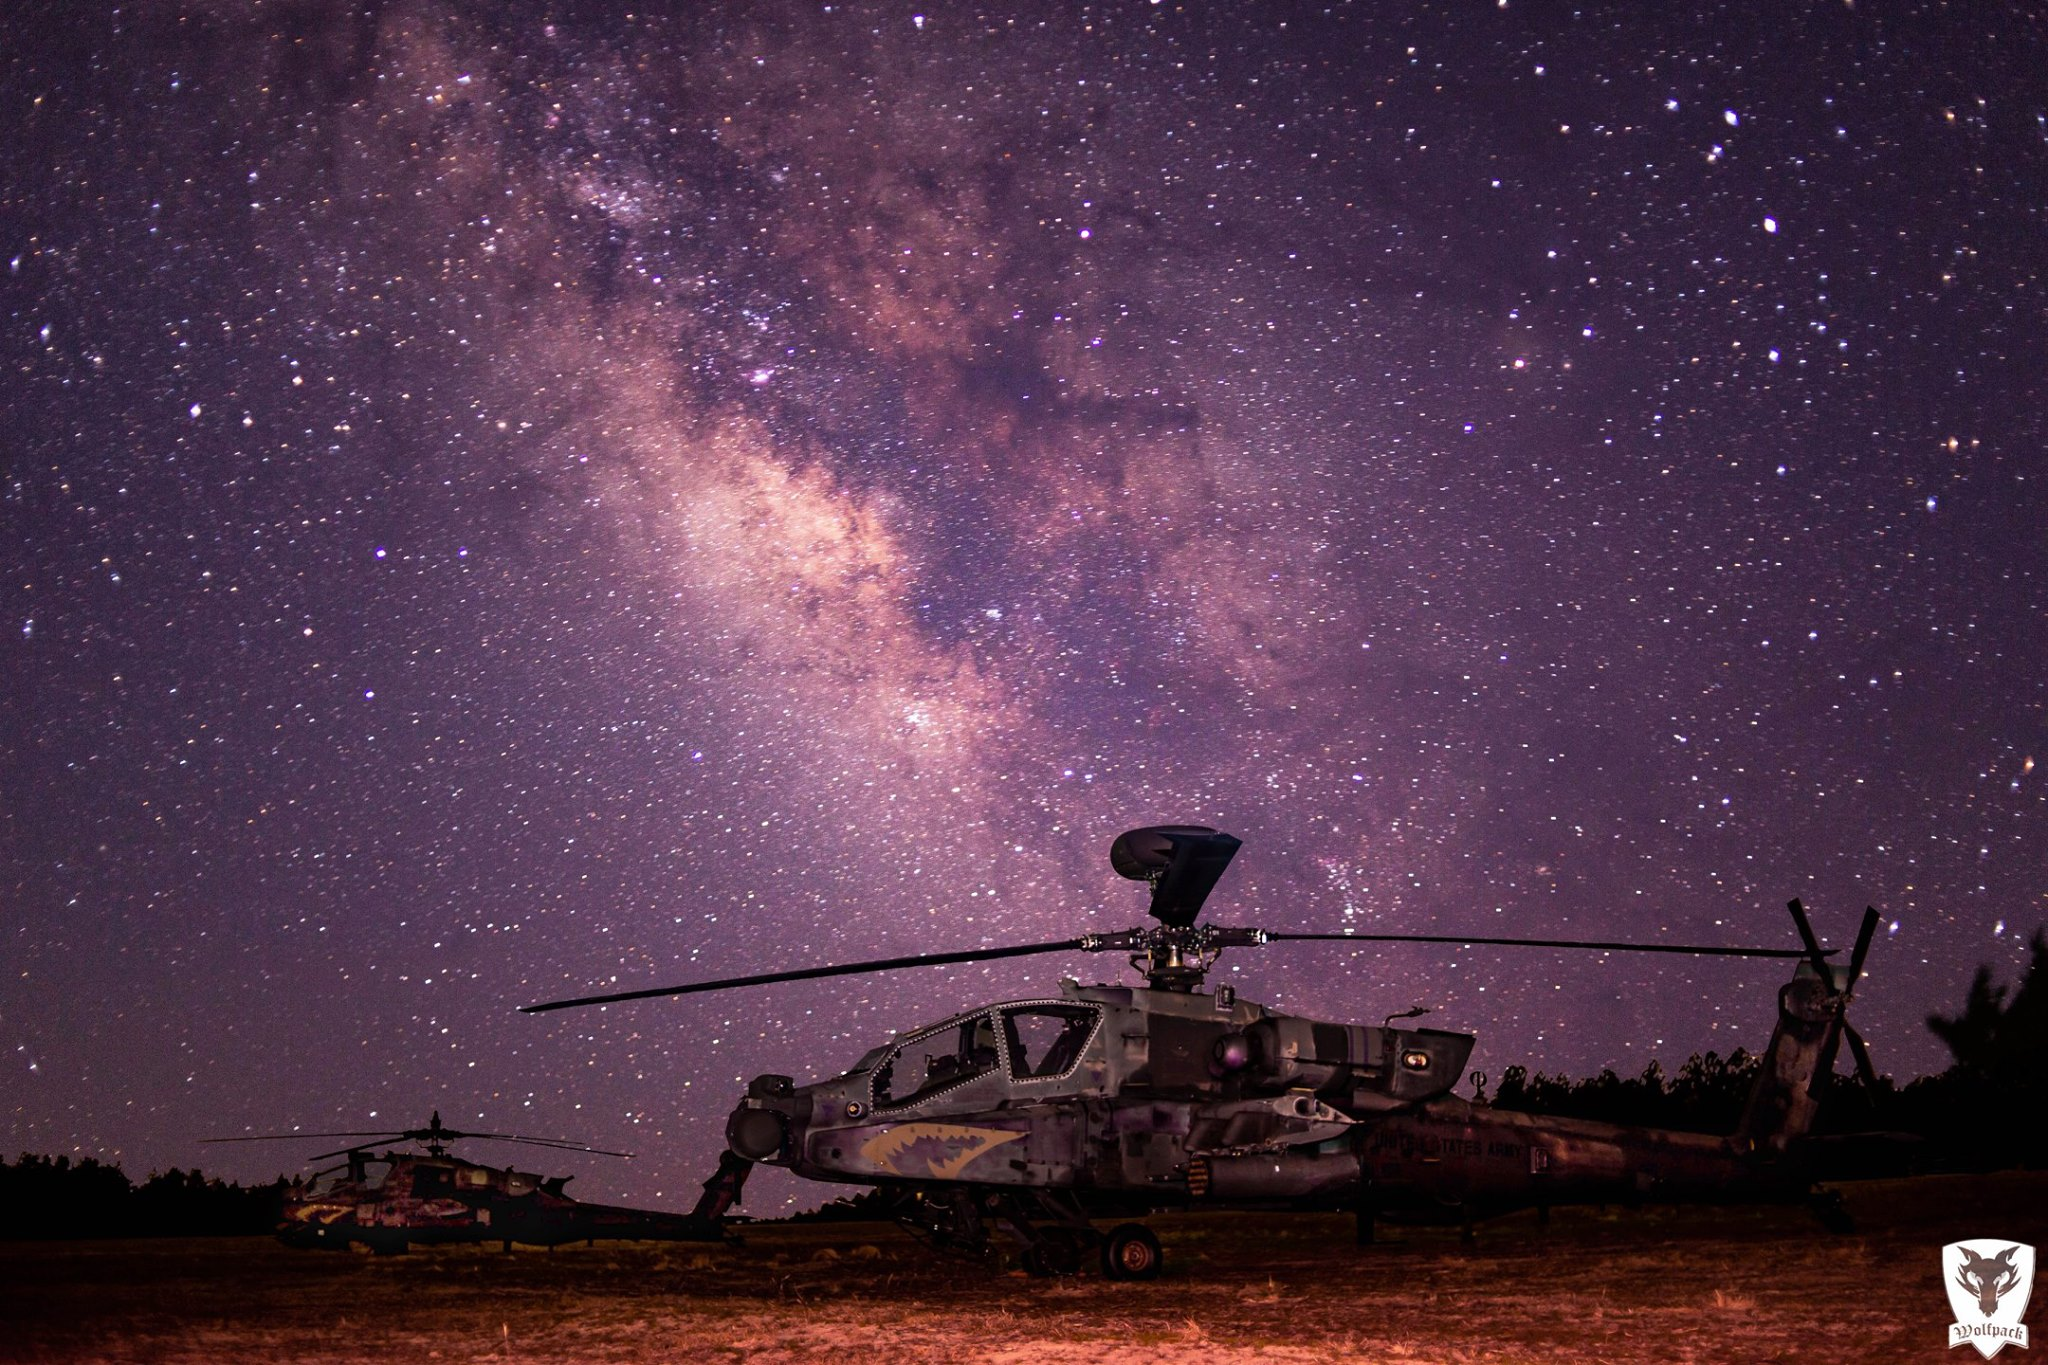 A Boeing Apache on a starry night. Photo submitted by Jeffrey Ramos / Instagram user @1_82arb using #verticalmag